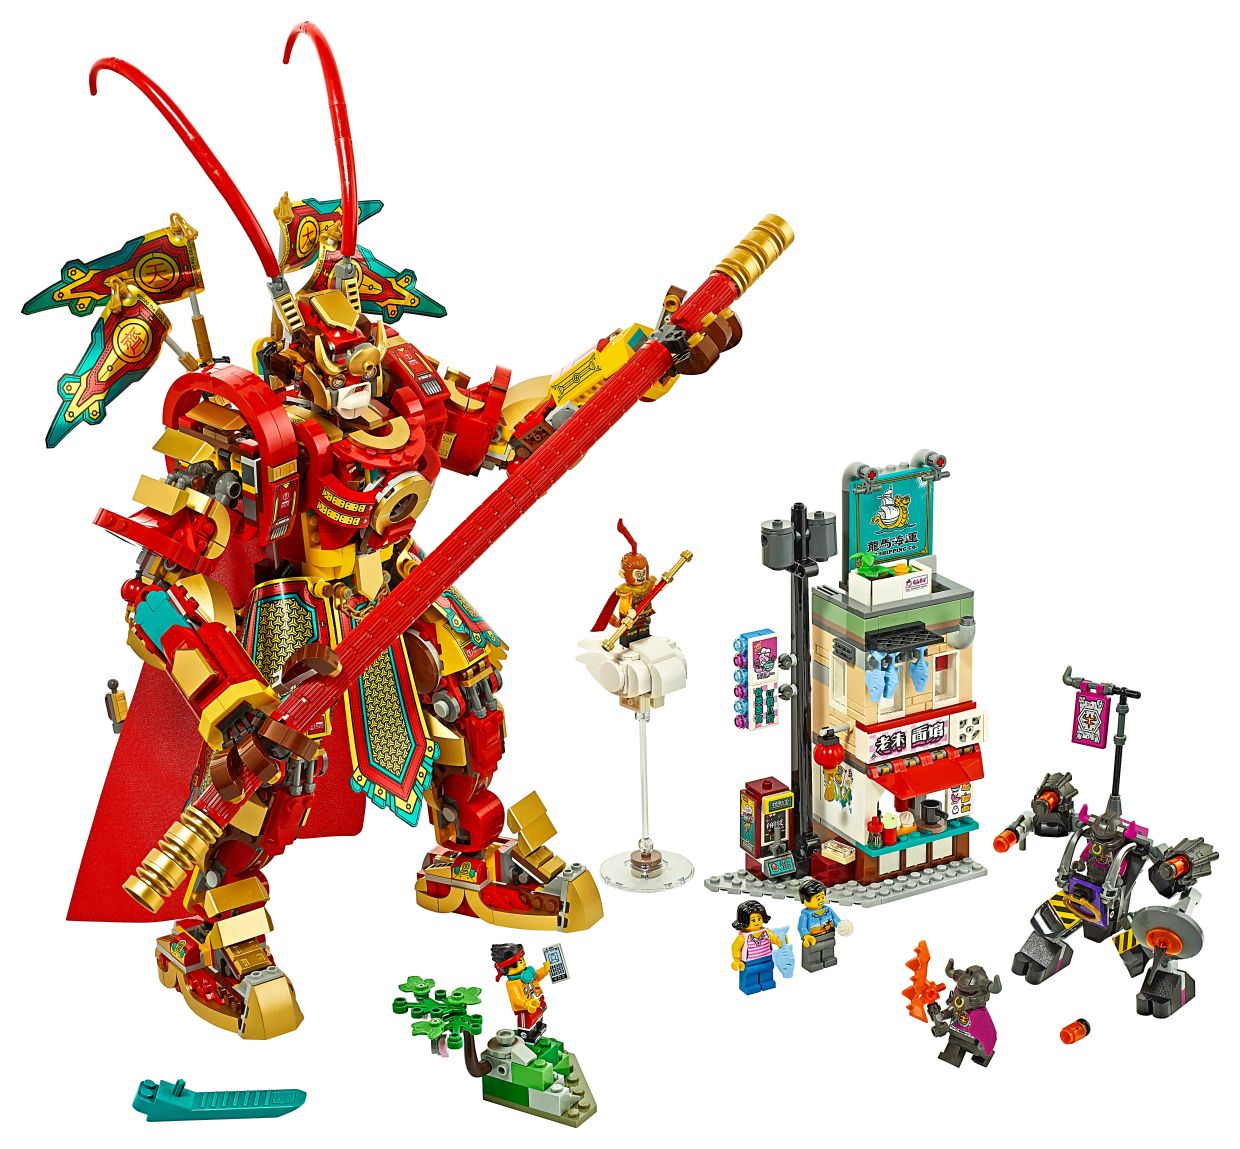 The Monkey King Warrior Mech is one of the highlights of the new Lego Monkie Kid range.